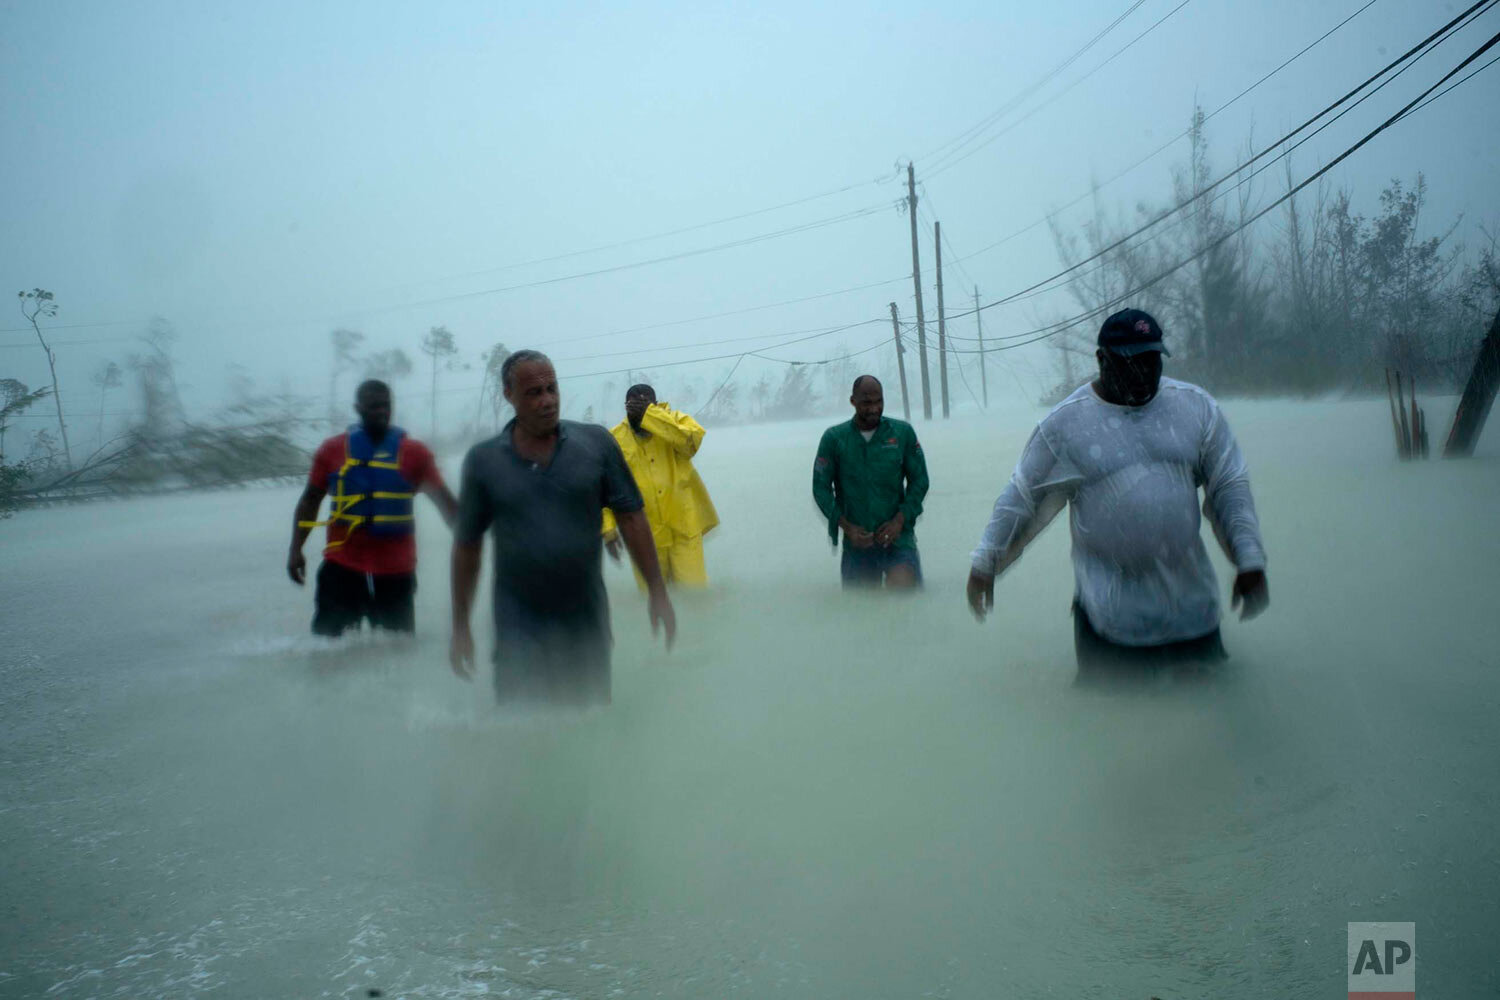 Volunteers walk under the wind and rain of Hurricane Dorian, on a flooded road after rescuing several families that arrived on small boats, near the Causarina bridge in Freeport, Grand Bahama, Bahamas, Tuesday, Sept. 3, 2019. (AP Photo/Ramon Espinosa)